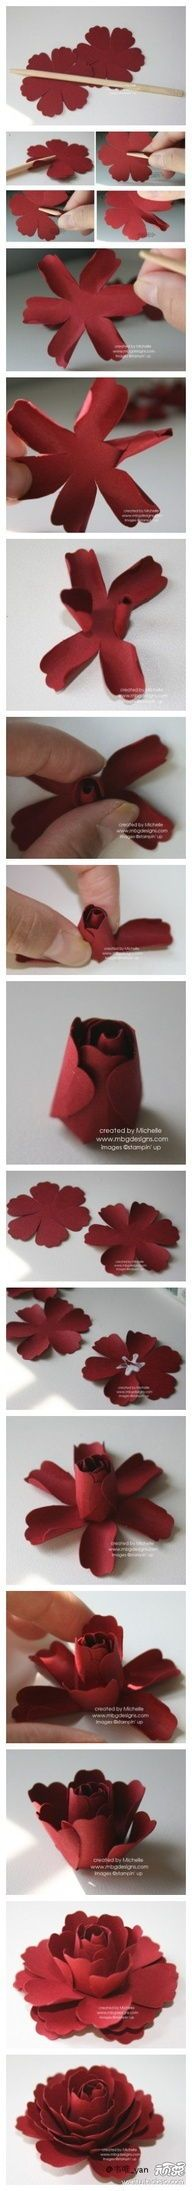 paper roses, paper flowers, red roses, flower tutorial, diy, inspiring pictures, cut flowers, paper crafts, blossoms